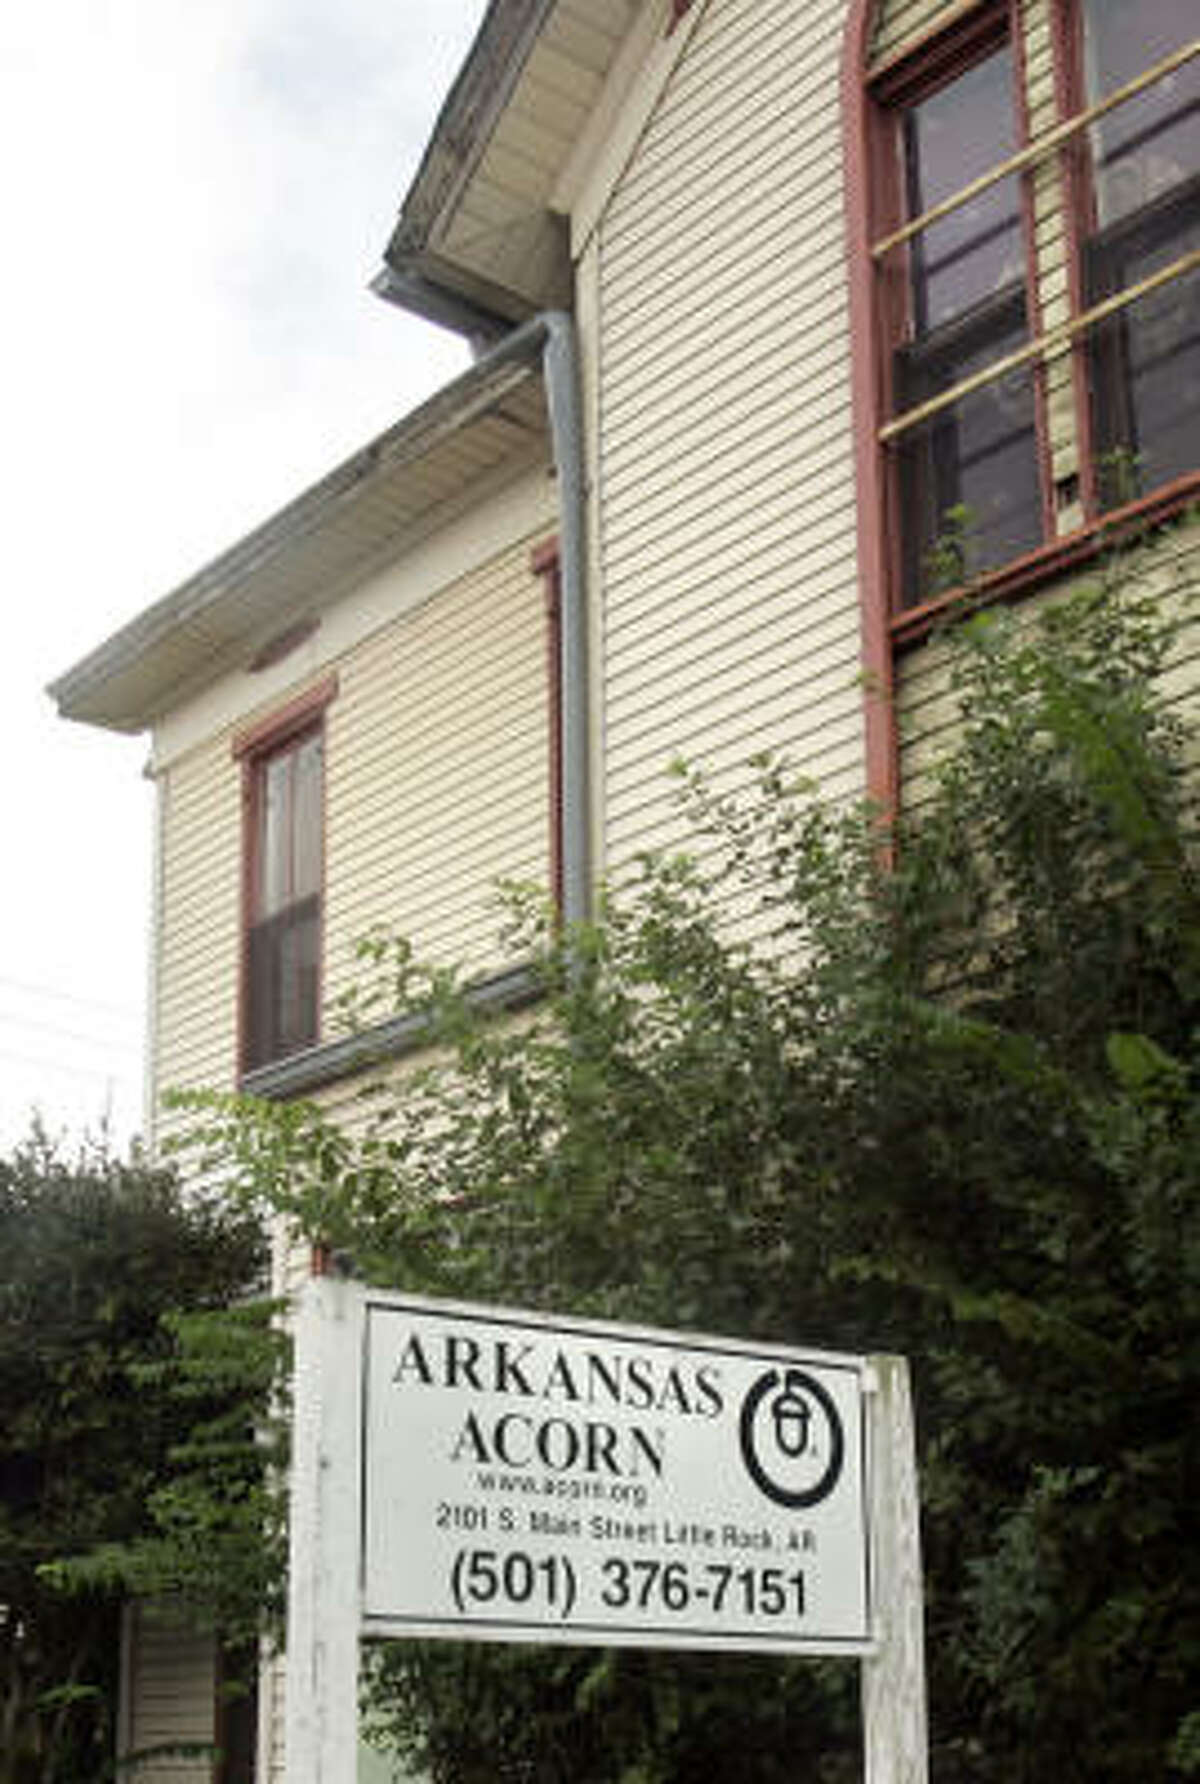 ACORN, Association of Community Organizations for Reform Now, got its start in Little Rock, Ark.